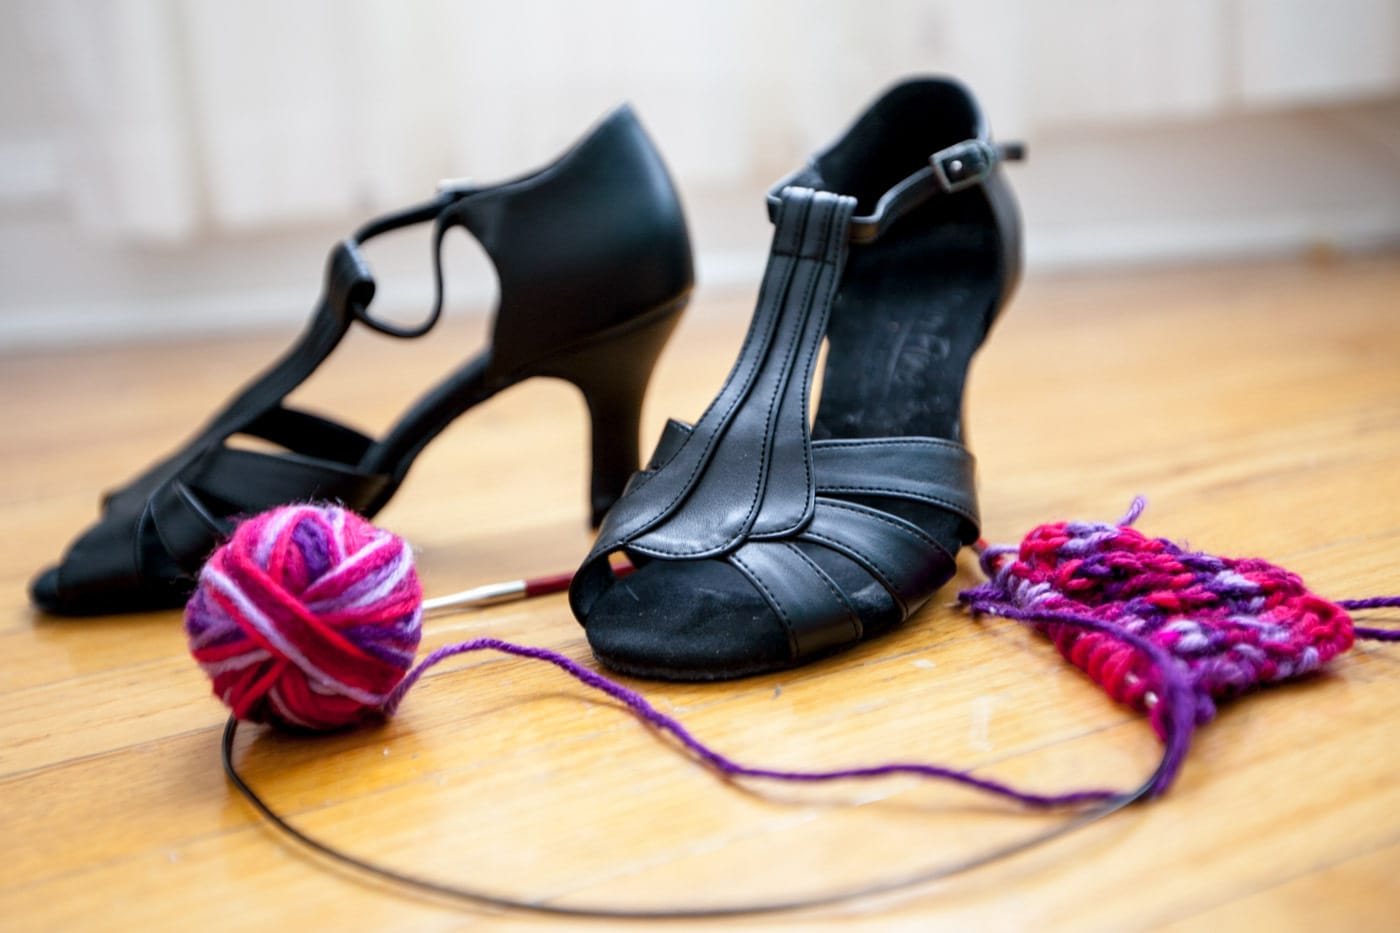 Salsa shoes and knitting needles.